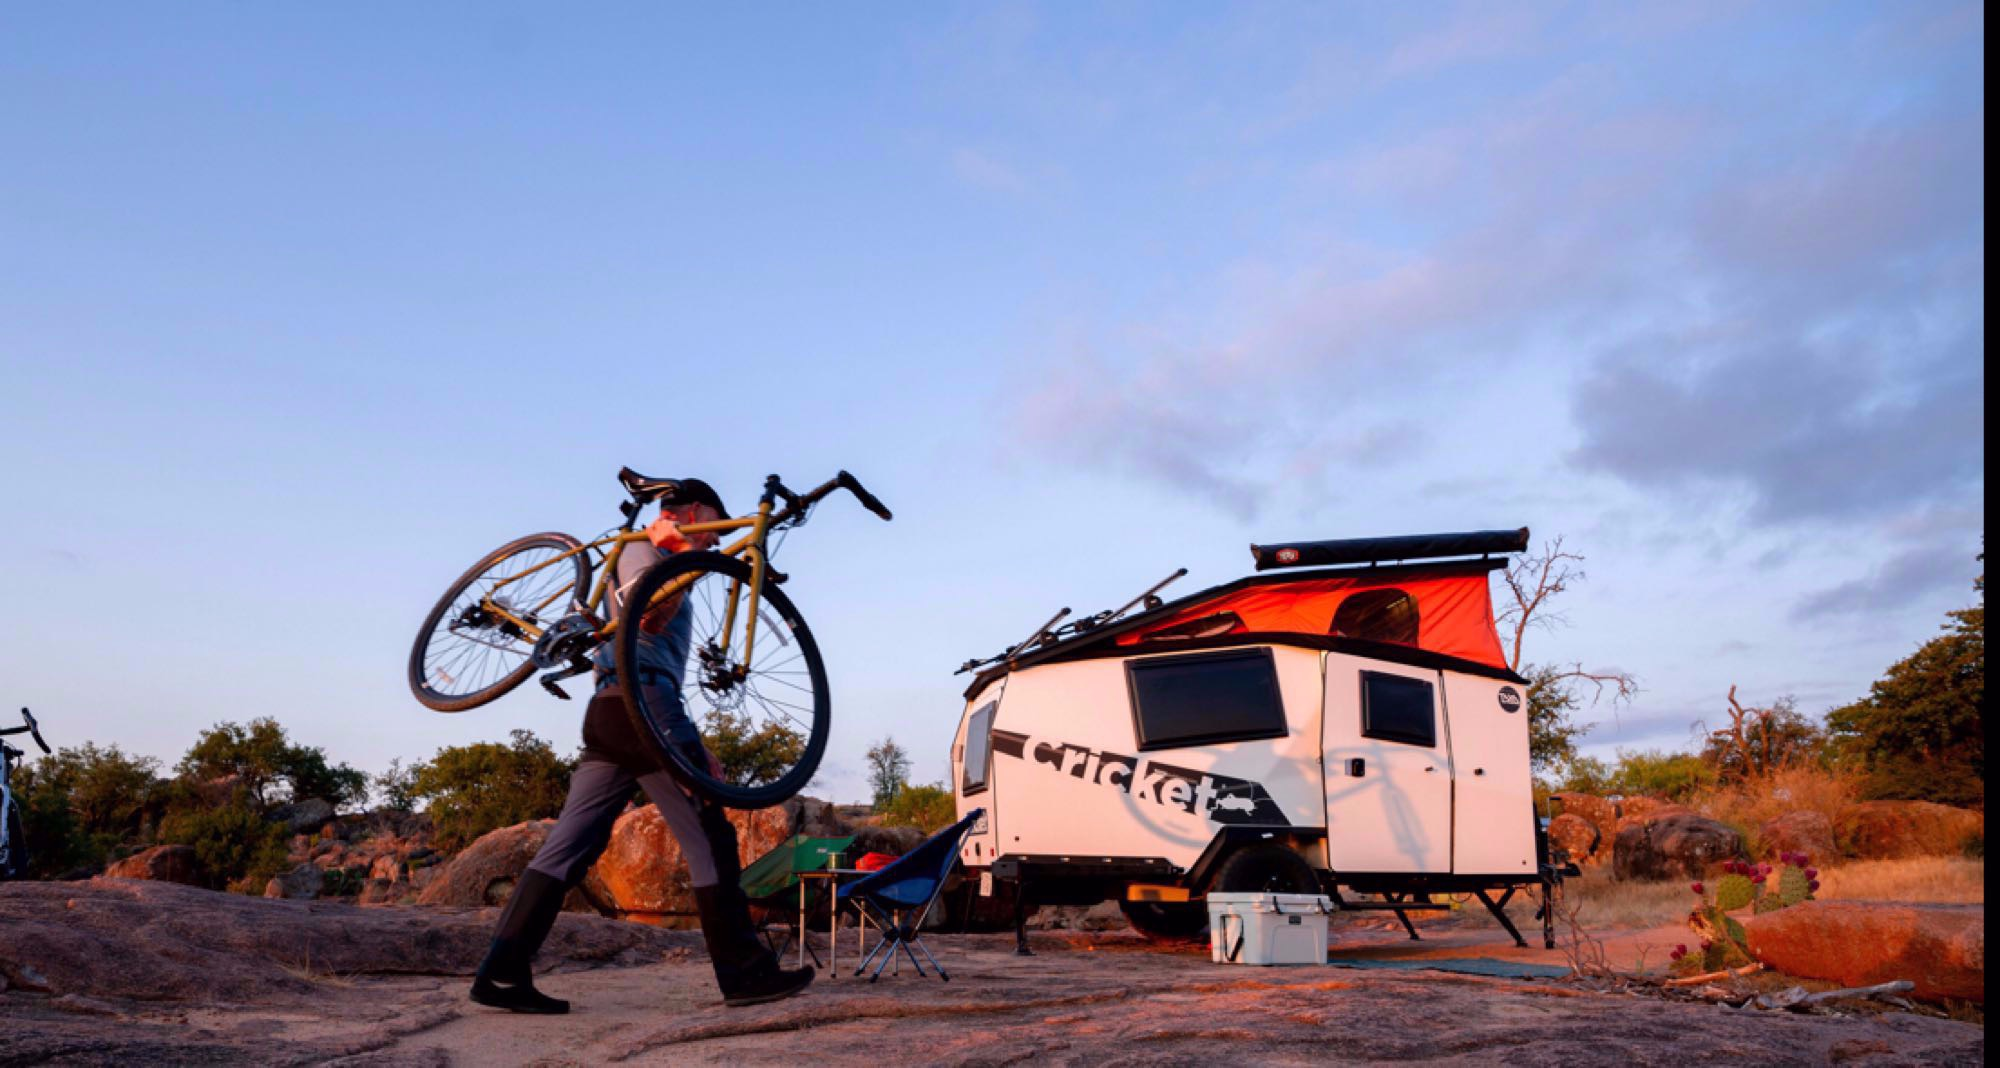 epic stock photo from Taxa'a site. The cooler and bike are not included. :). TAXA Outdoors Cricket Camper 2021